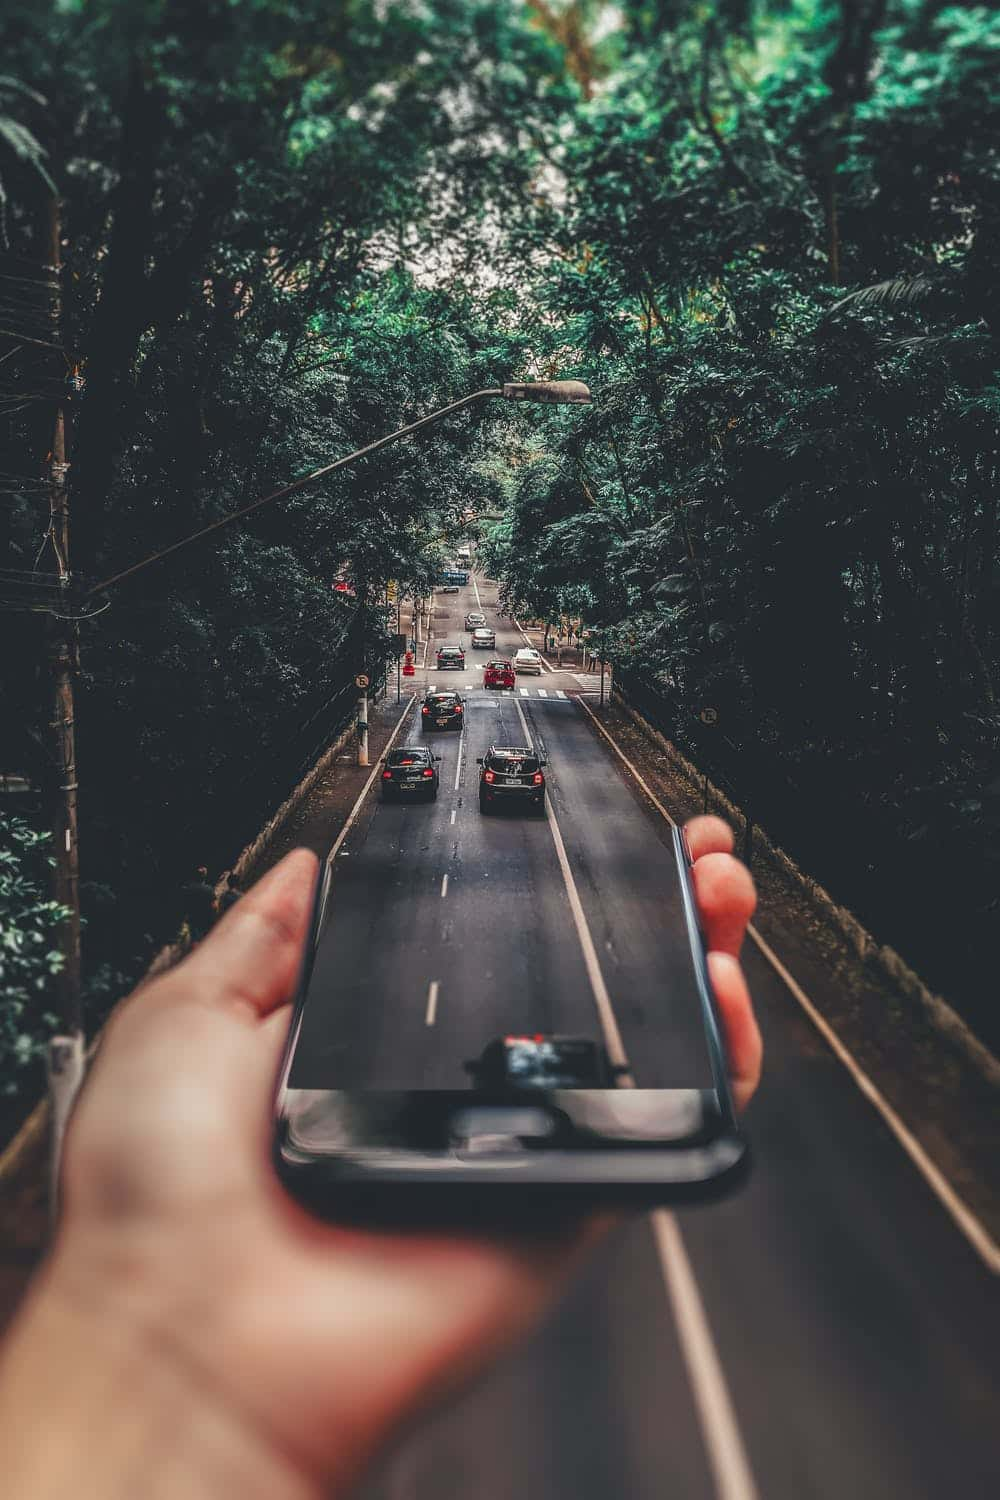 a 3dd creative photo of cars and a phone